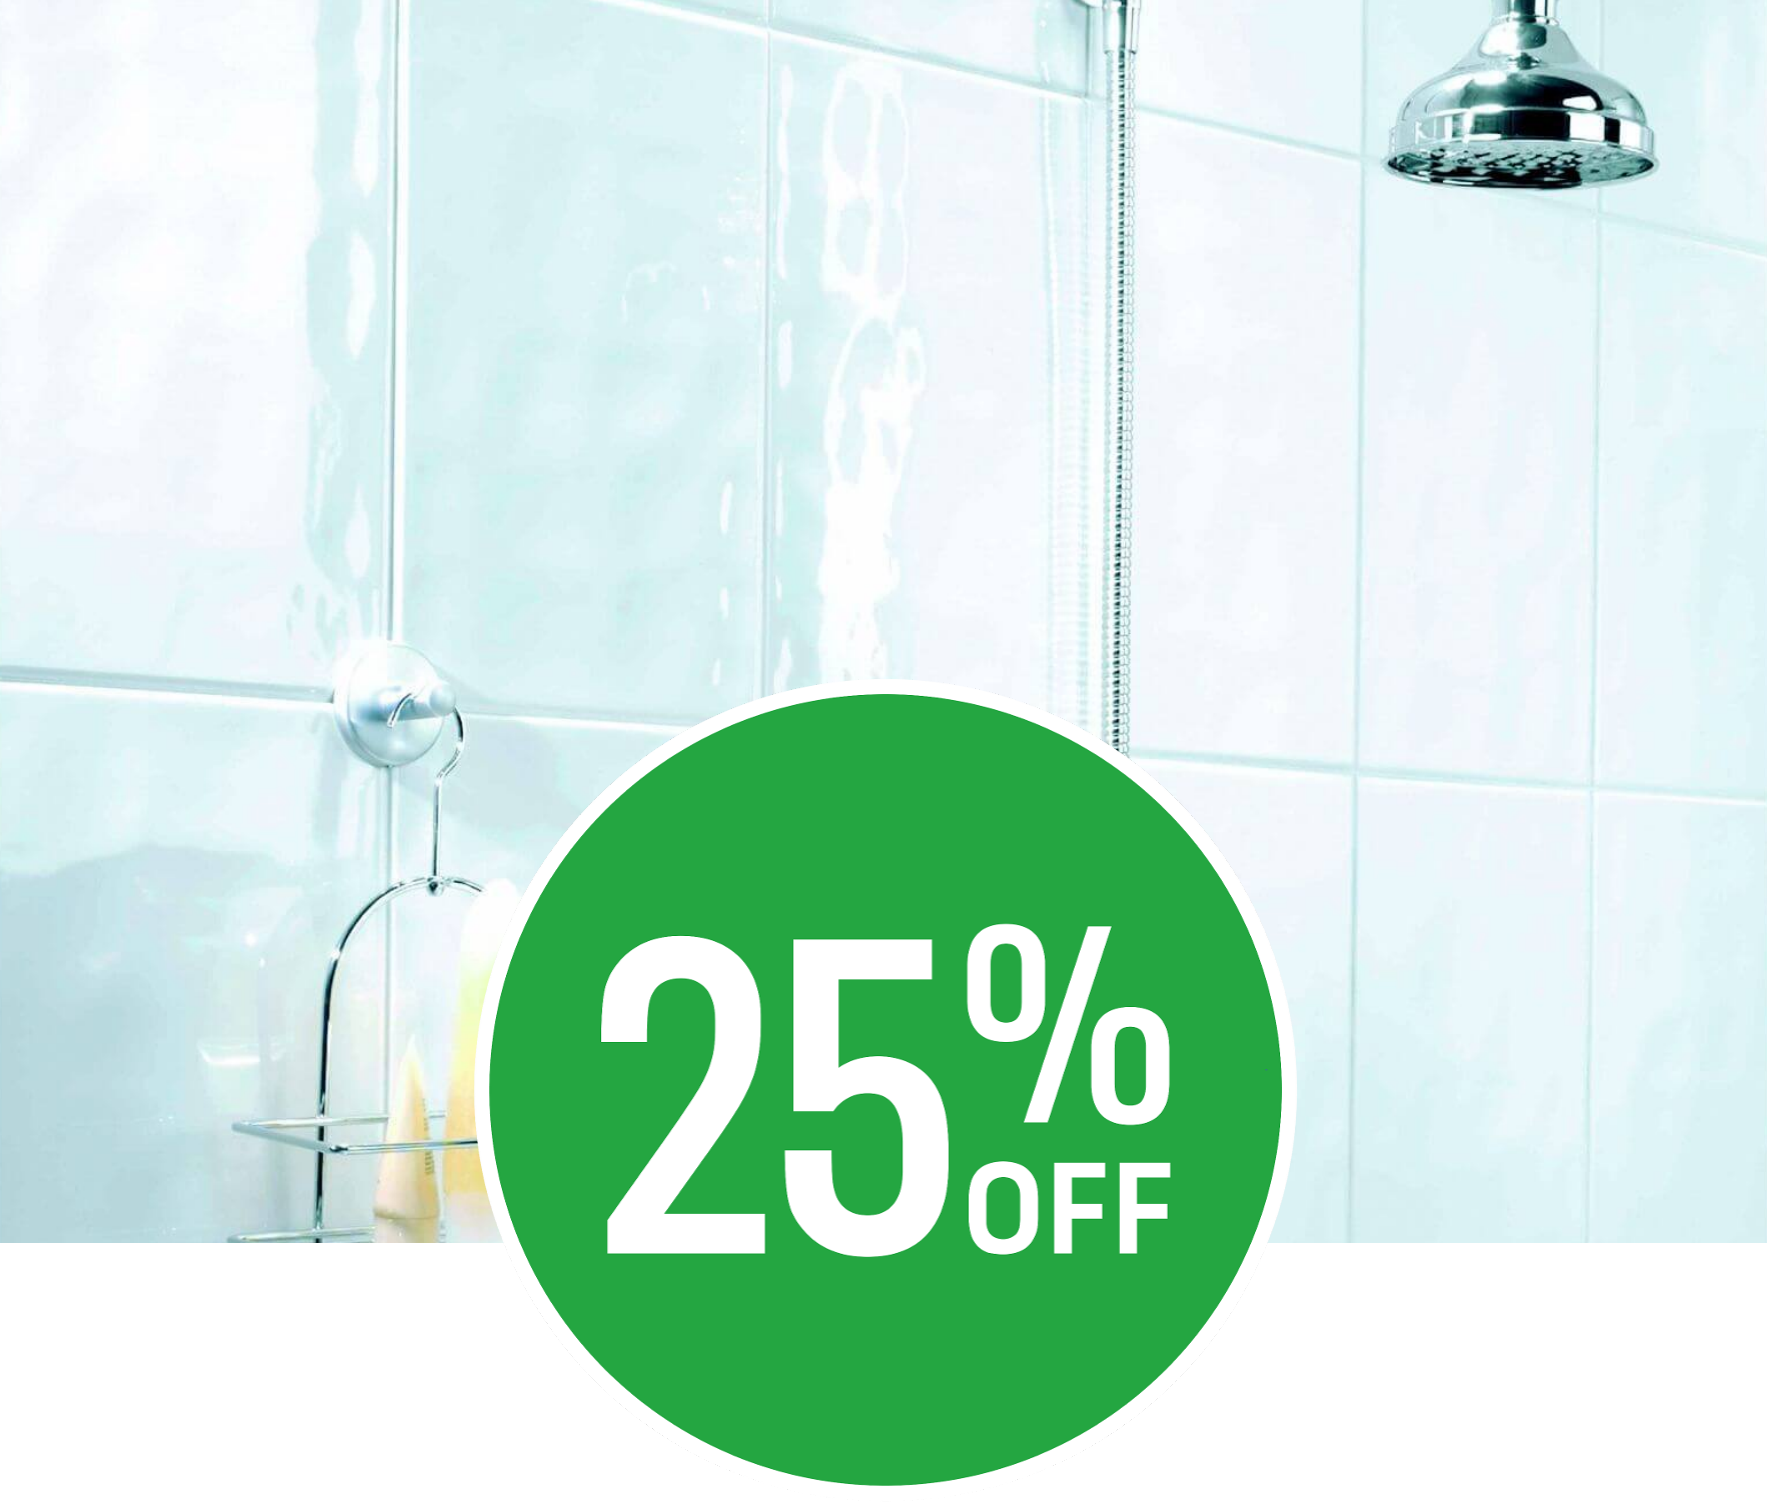 25% off Bumpy Wall Tiles - White - 250 x 400mm - 10 pack